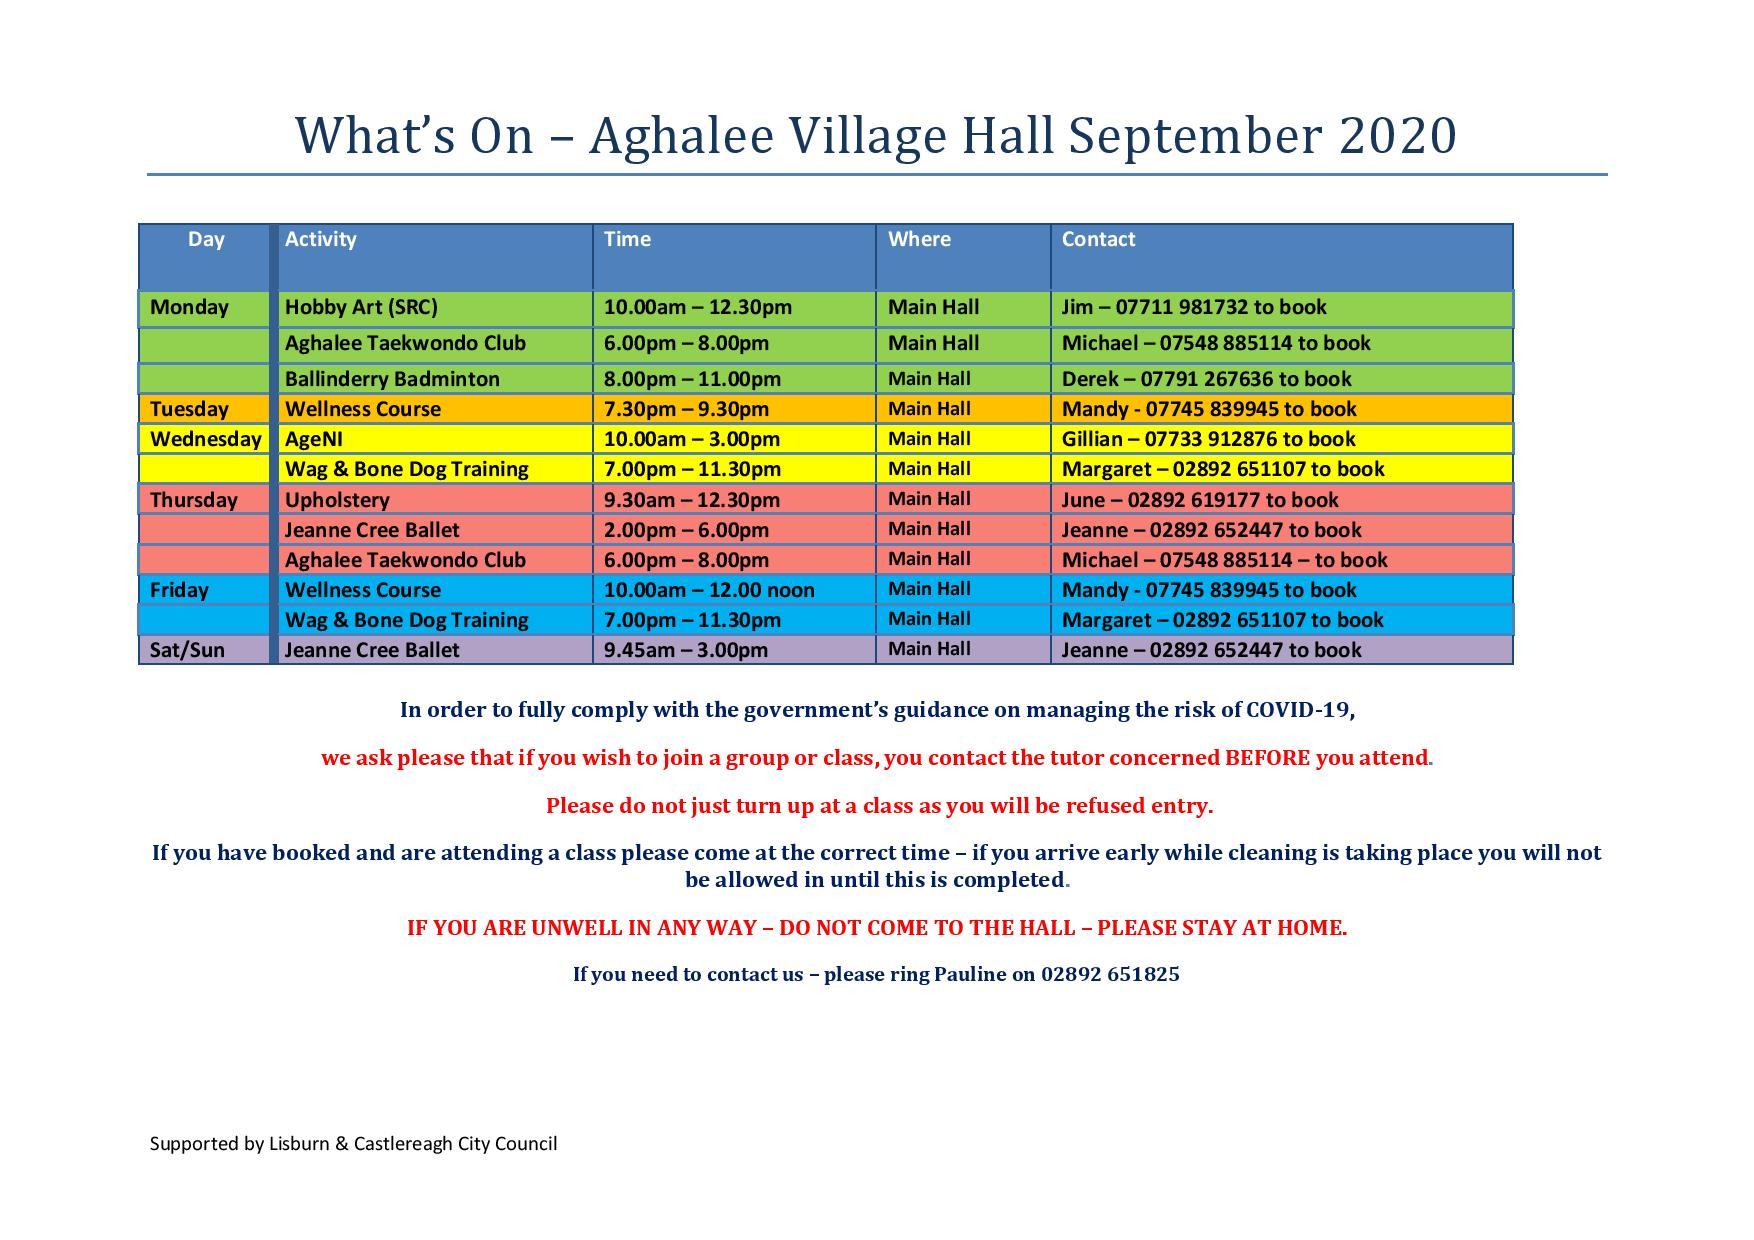 What's On in Aghalee Village Hall Sept 2020